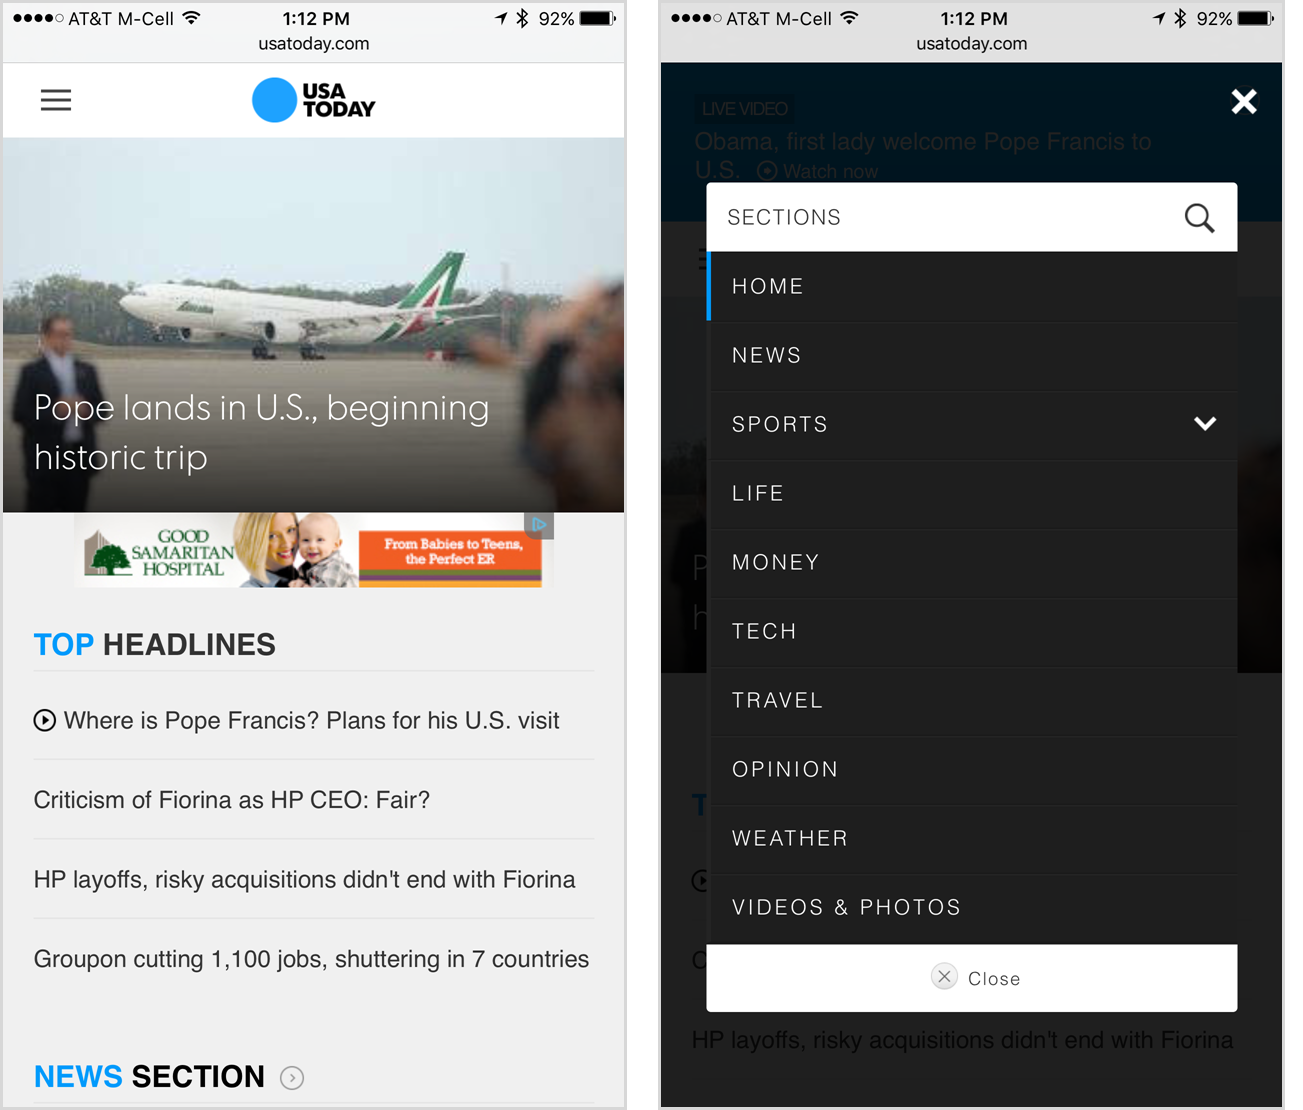 Ui best practice spacing between navigation options